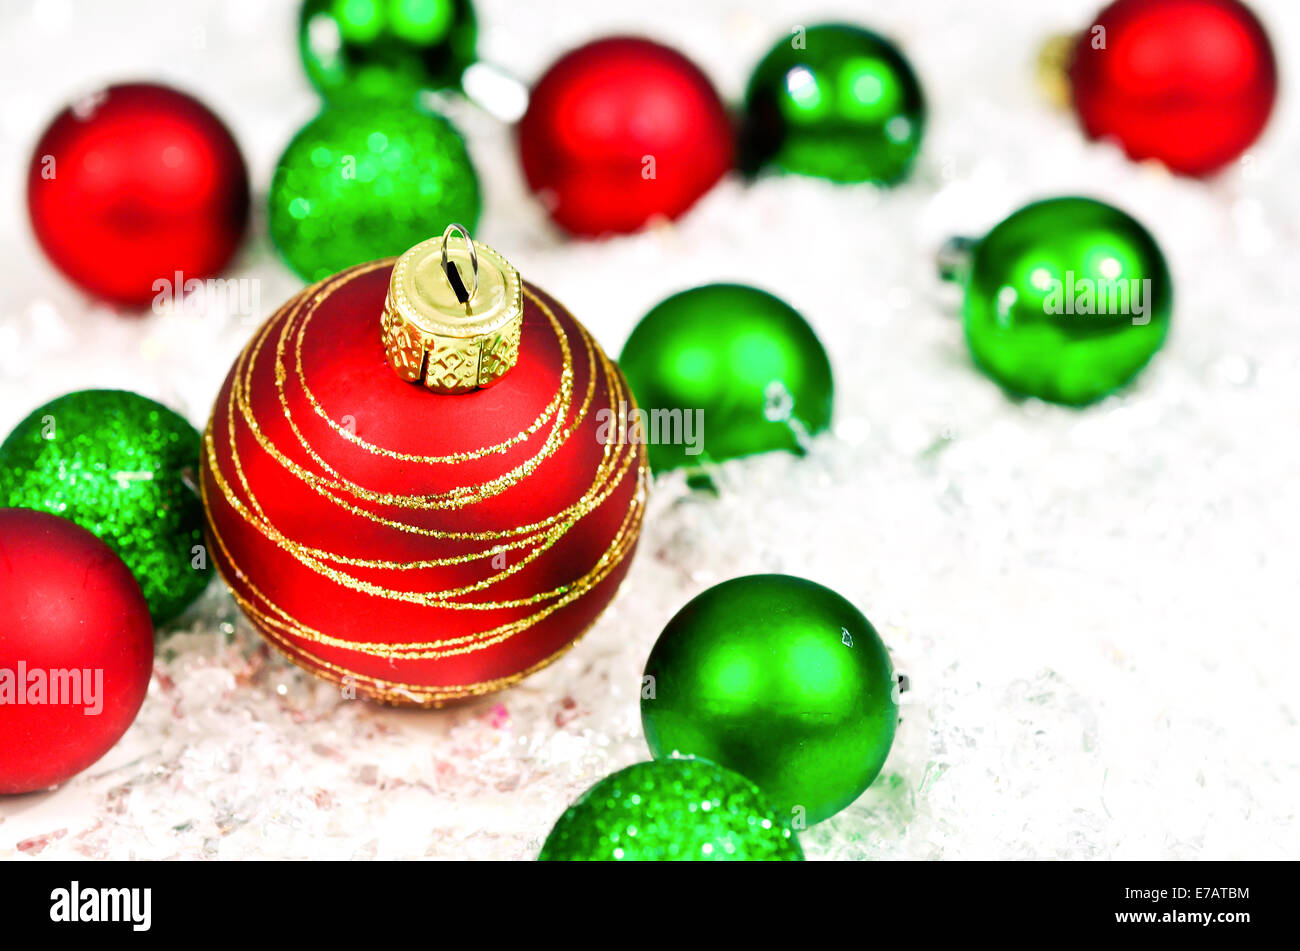 Red and green christmas ornaments on snow background stock for Red and green christmas decorations